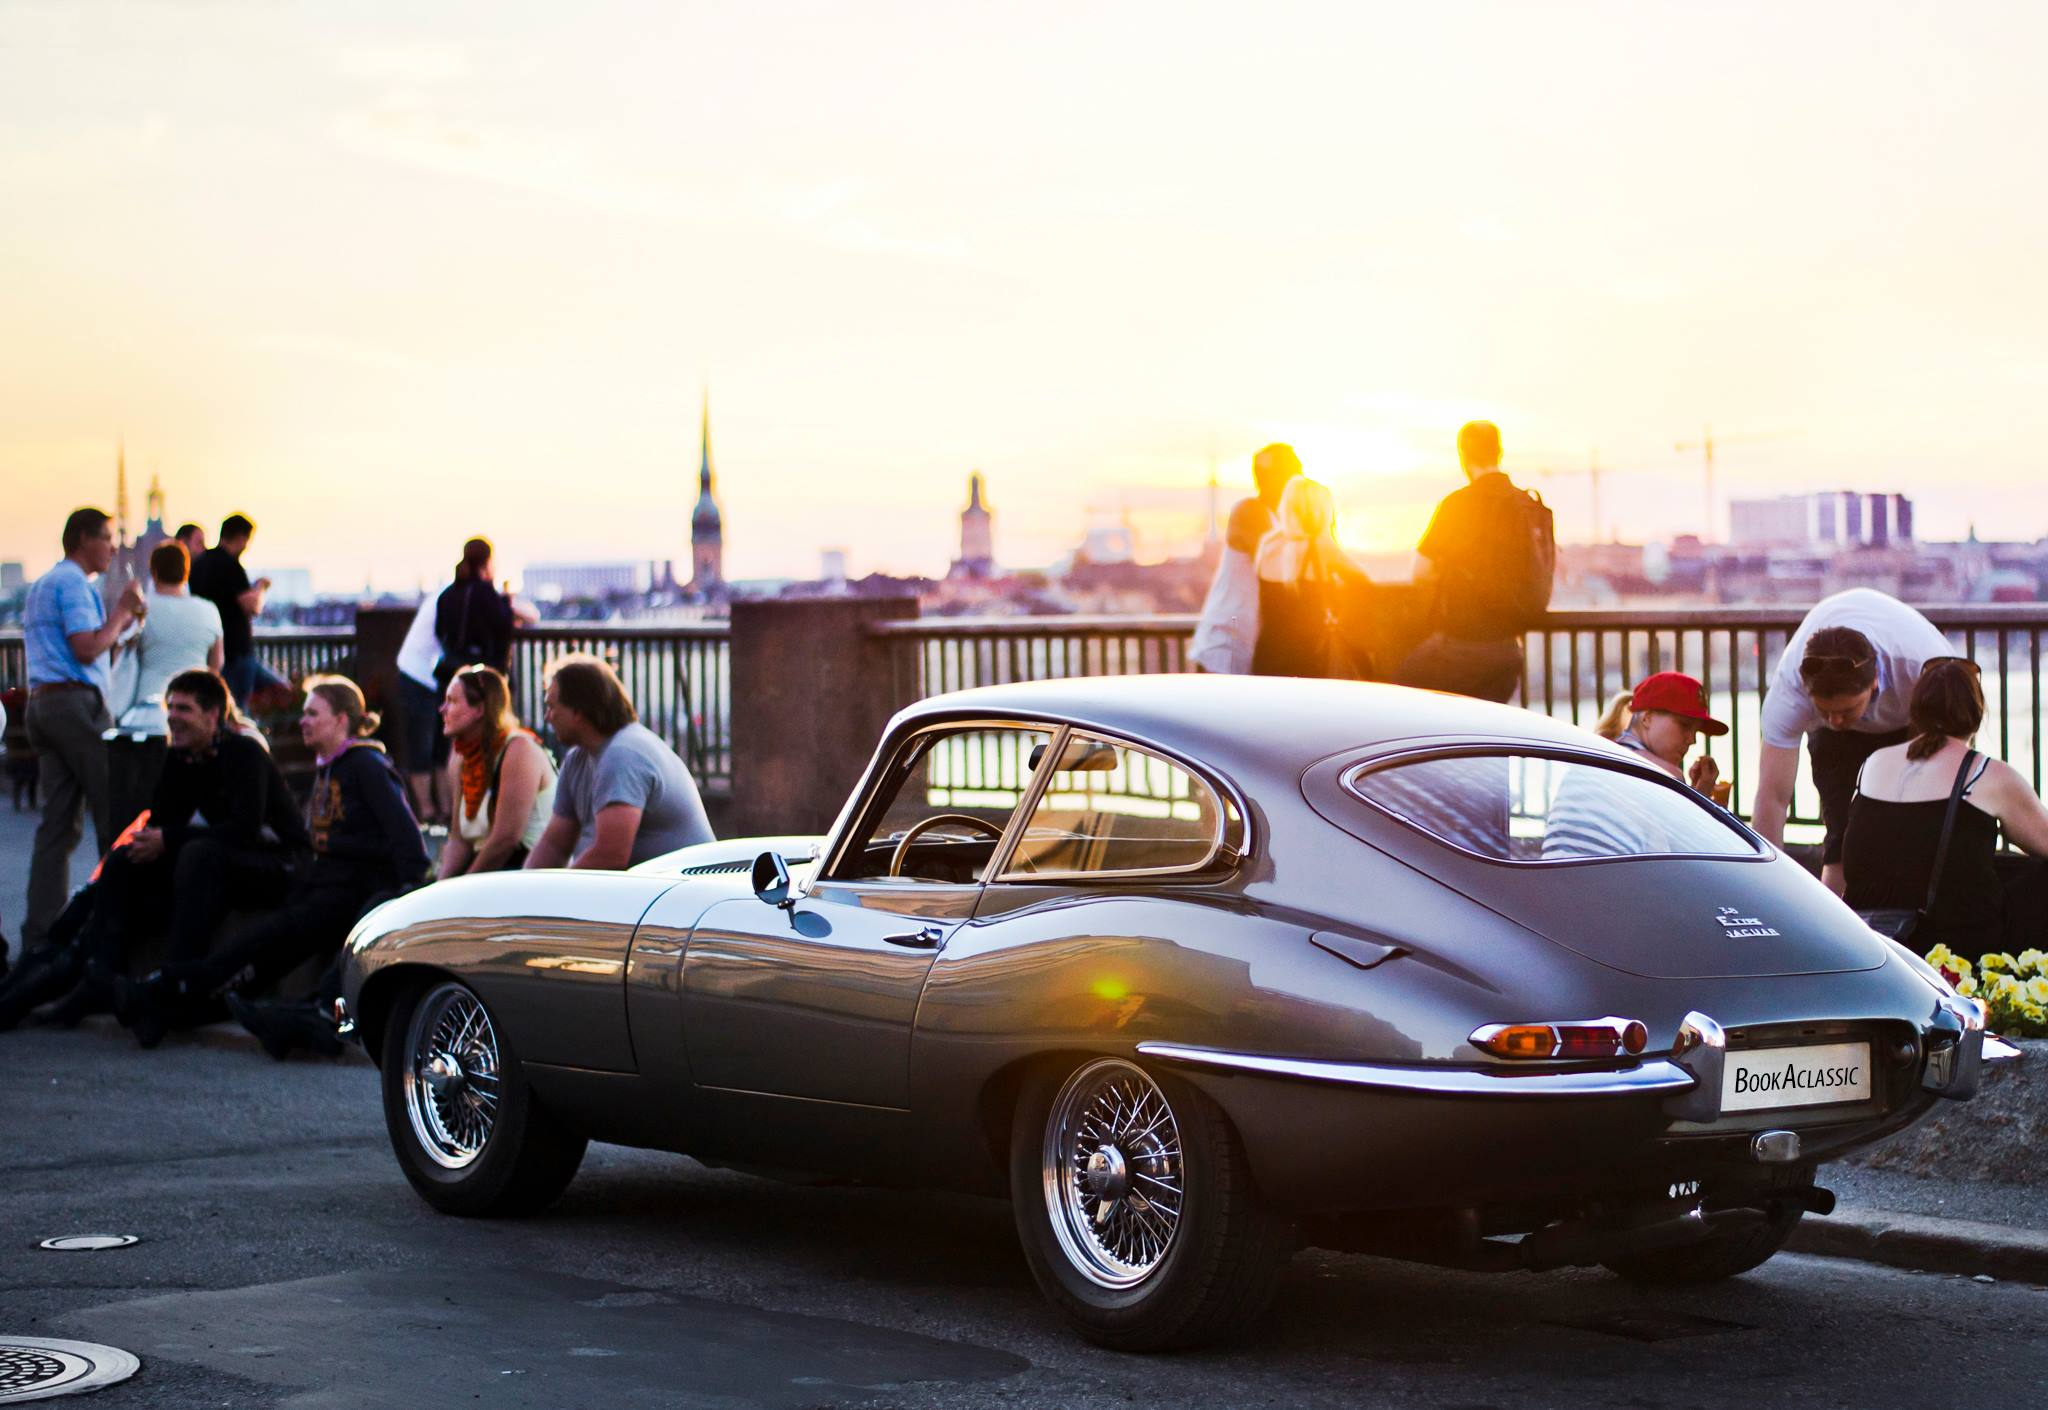 """""""BookAclassic"""" Goes Global in 36 countries, the emerging AirBnB of Vintage Car Rental"""